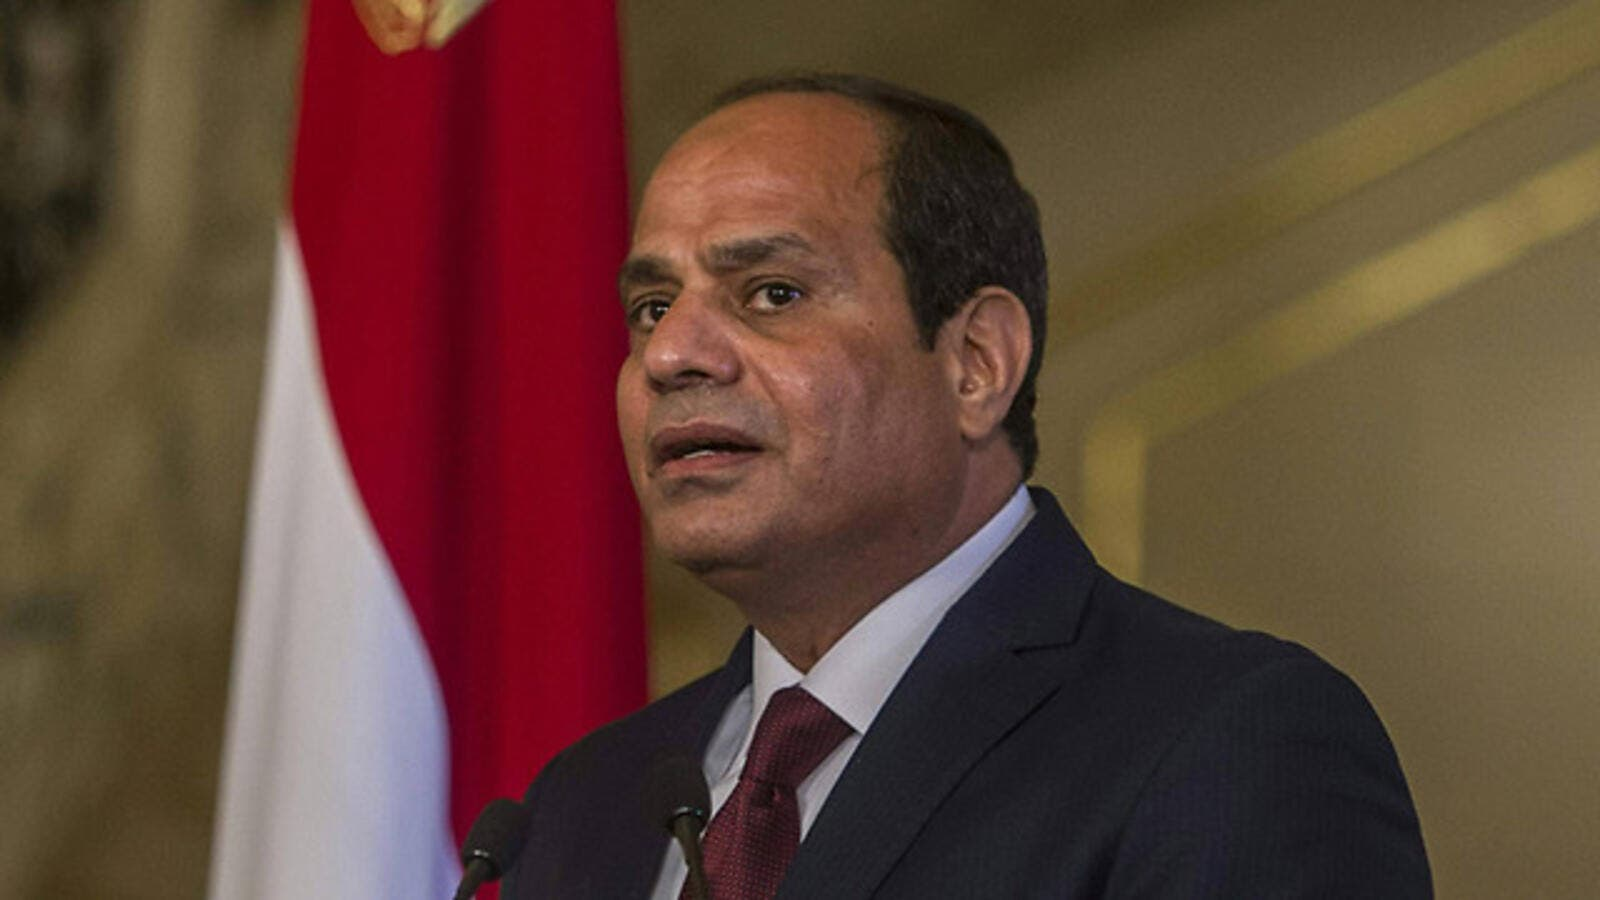 Egypt's military regime launched a crackdown on opposition voices